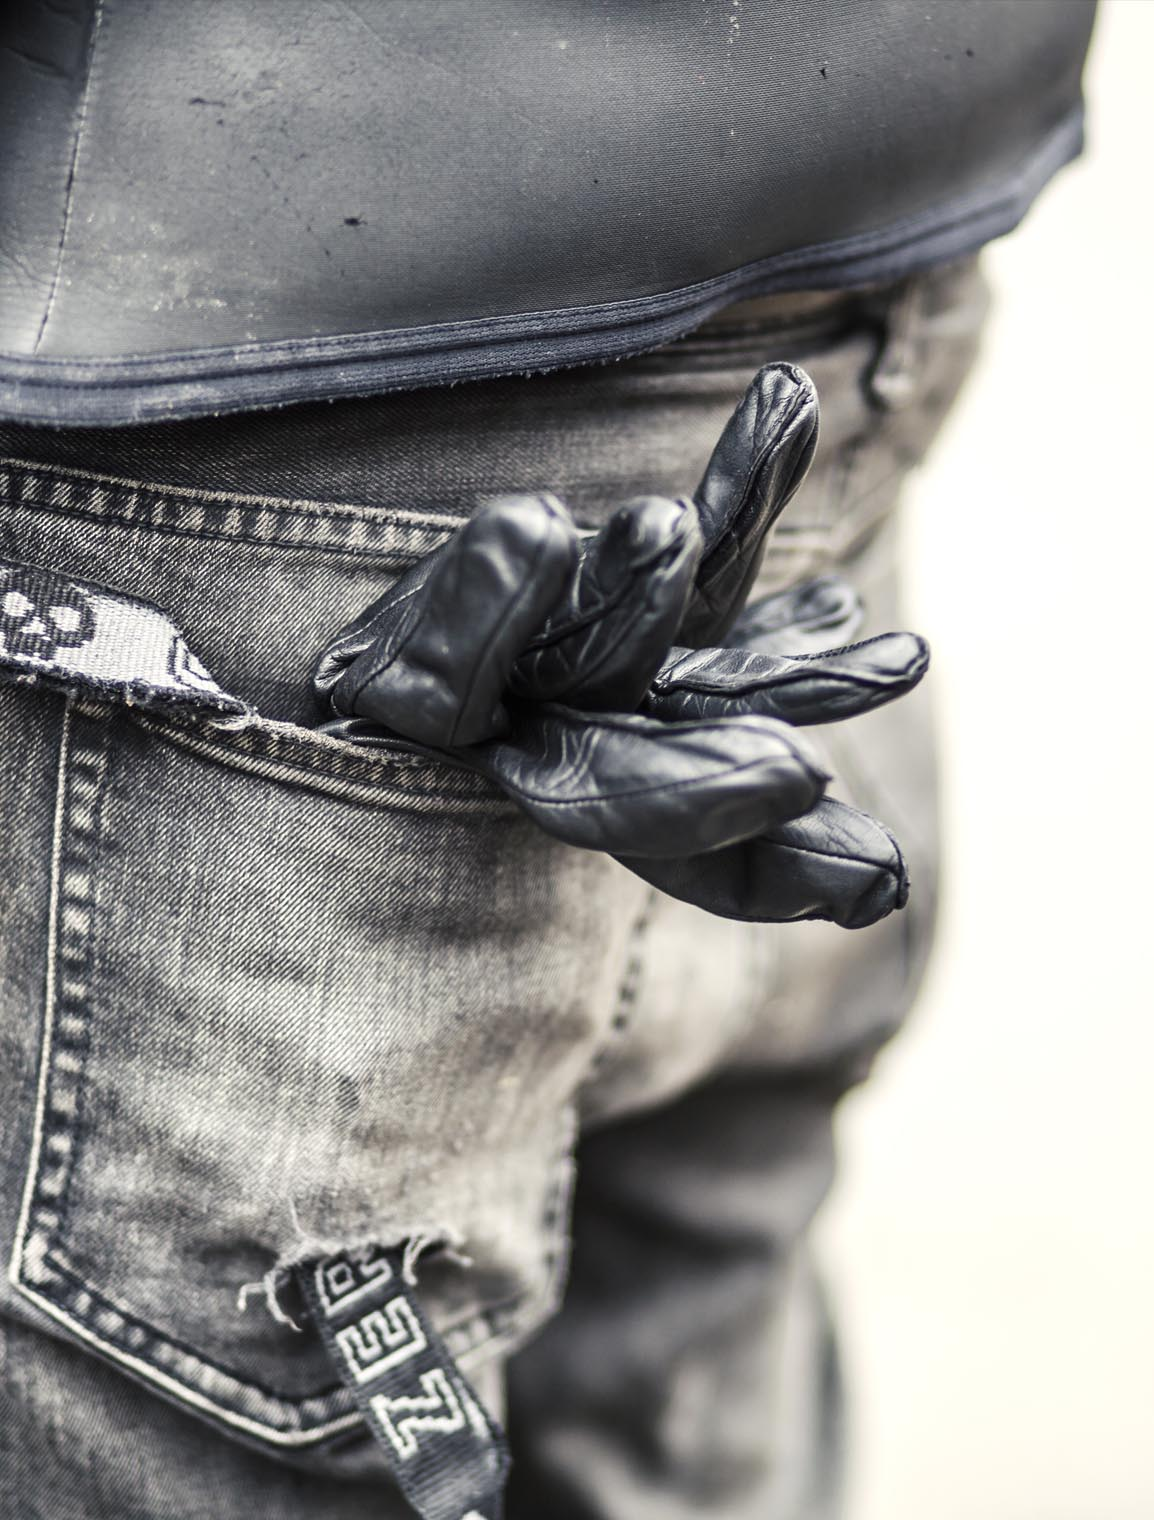 titan_roadtrip_motorcycles_street_jeans_gloves